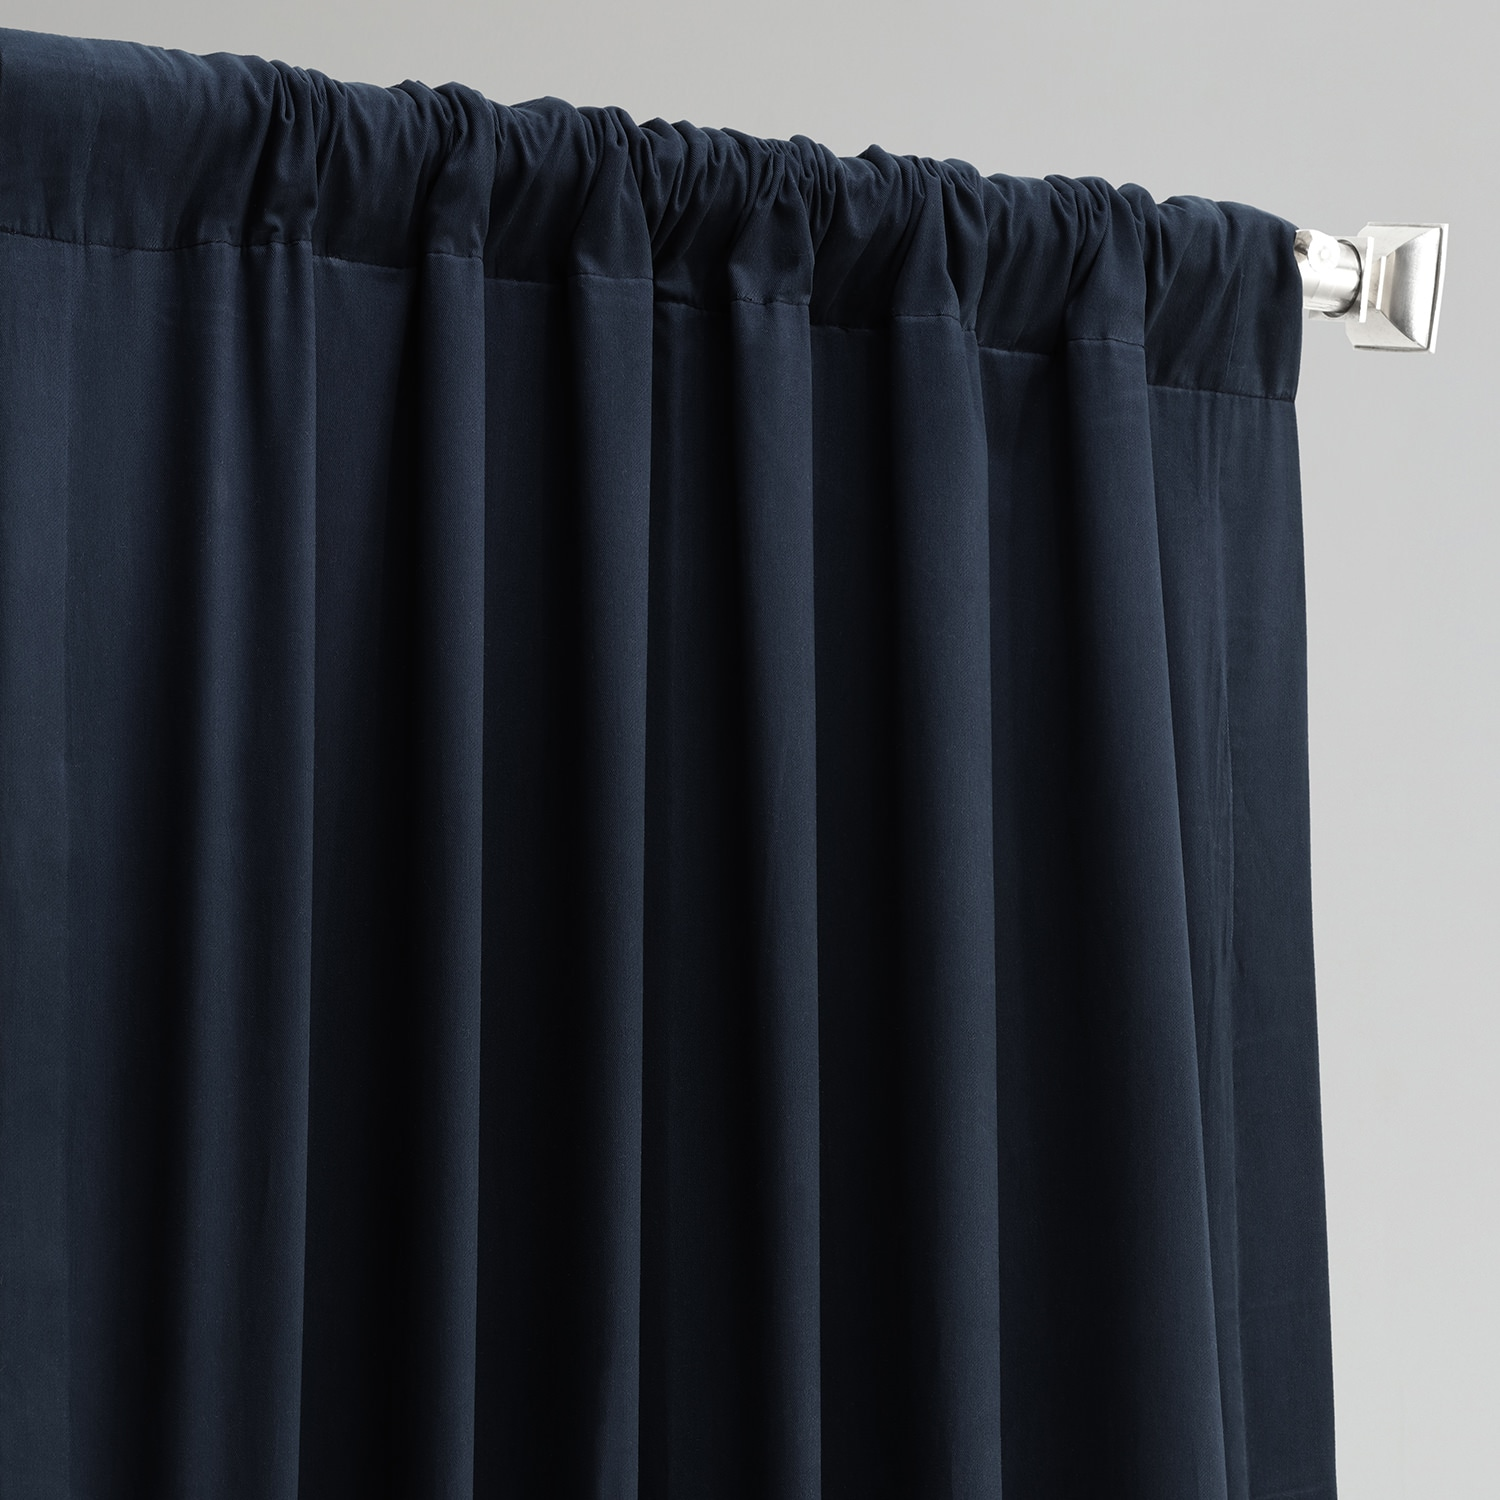 Polo Navy Solid Cotton Blackout Curtain